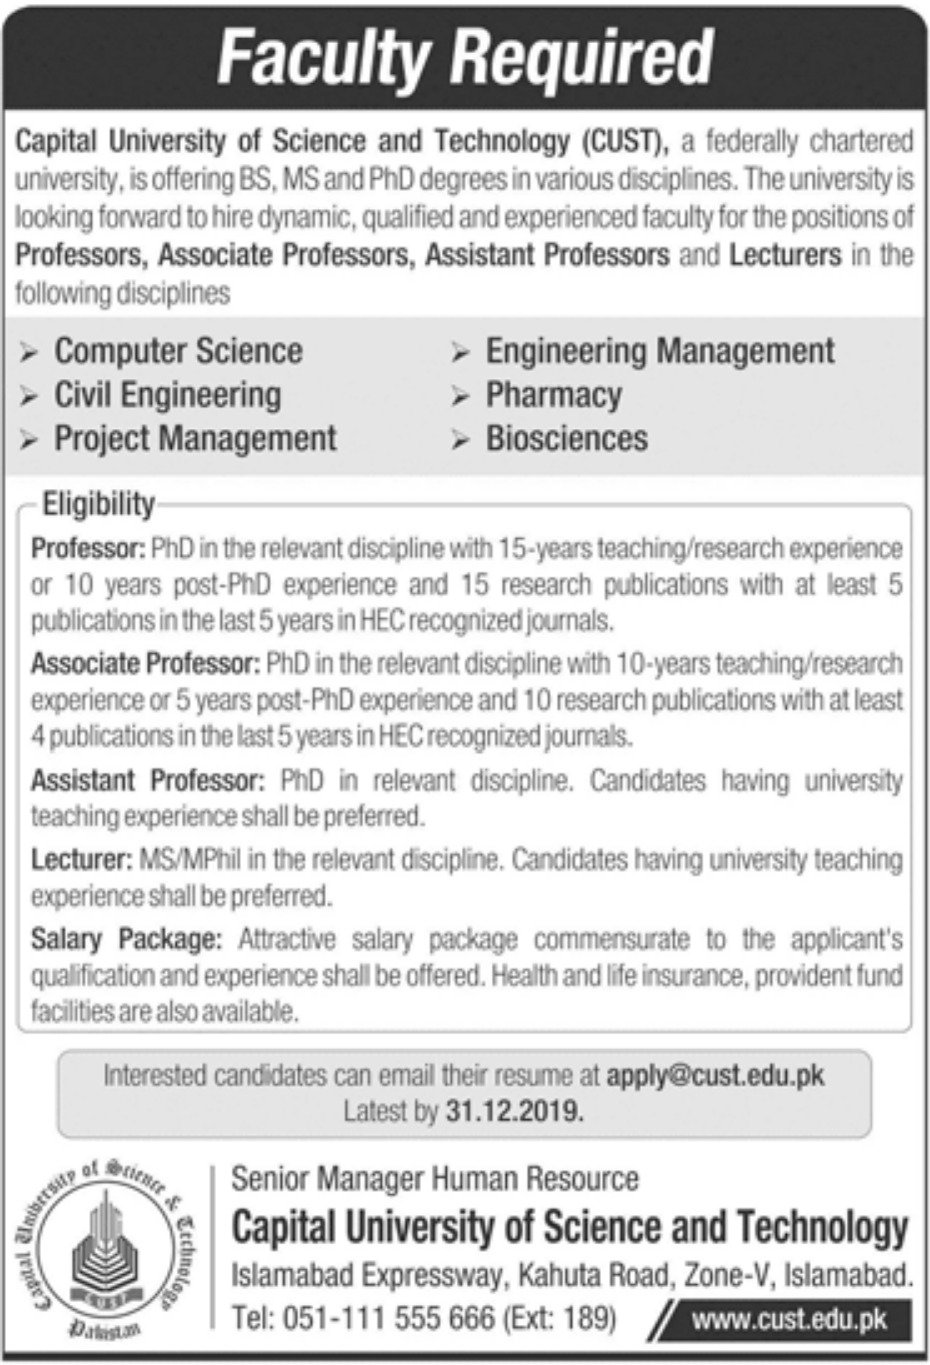 Capital University of Science Technology Jobs CUST Islamabad